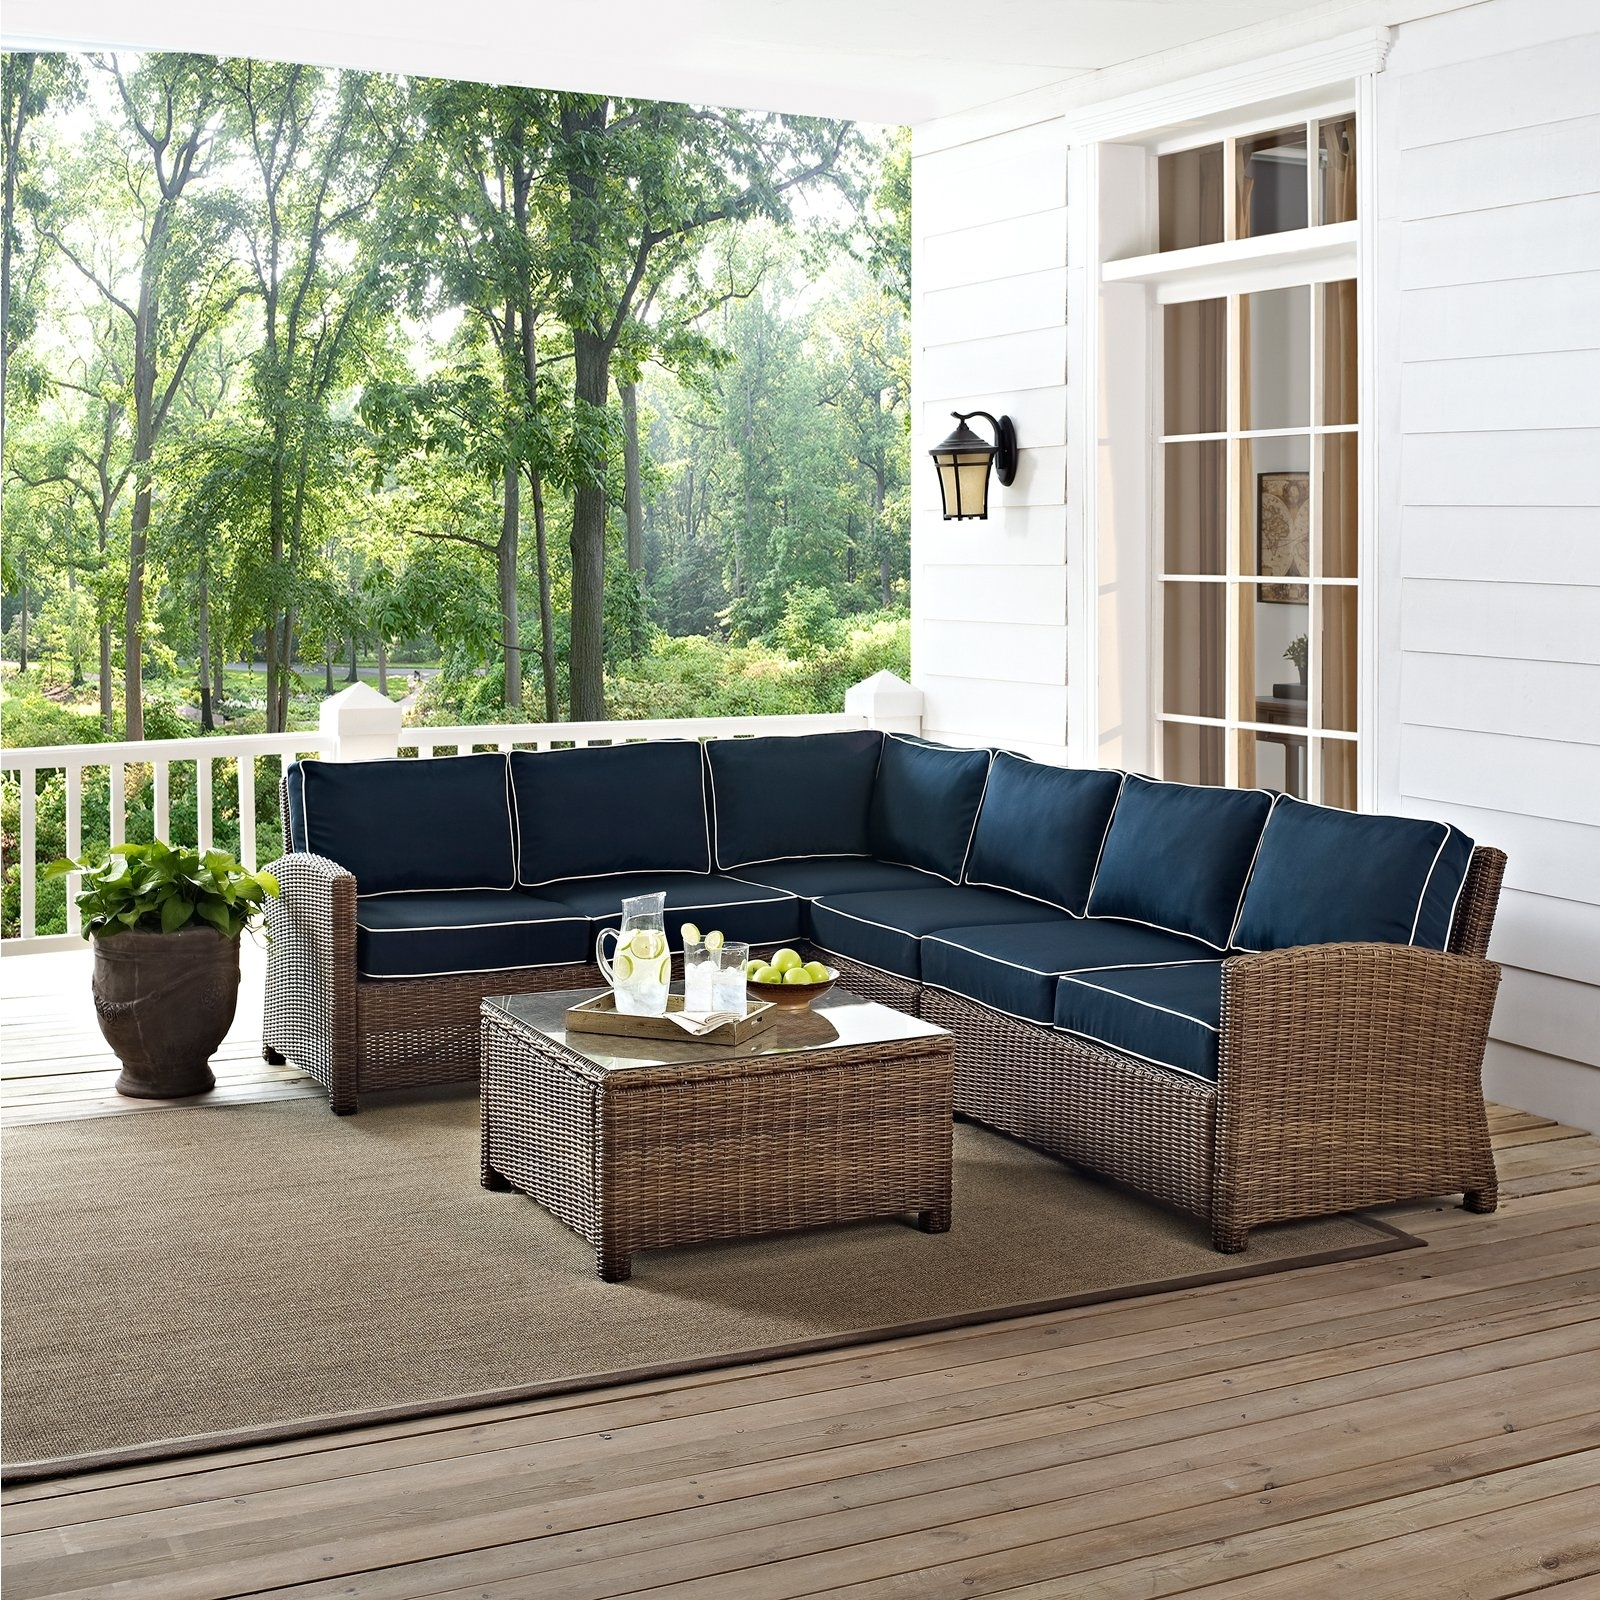 Current Wicker 4Pc Patio Conversation Sets With Navy Cushions Throughout Crosley Bradenton 5 Piece Outdoor Wicker Sectional Conversation Set (View 2 of 15)